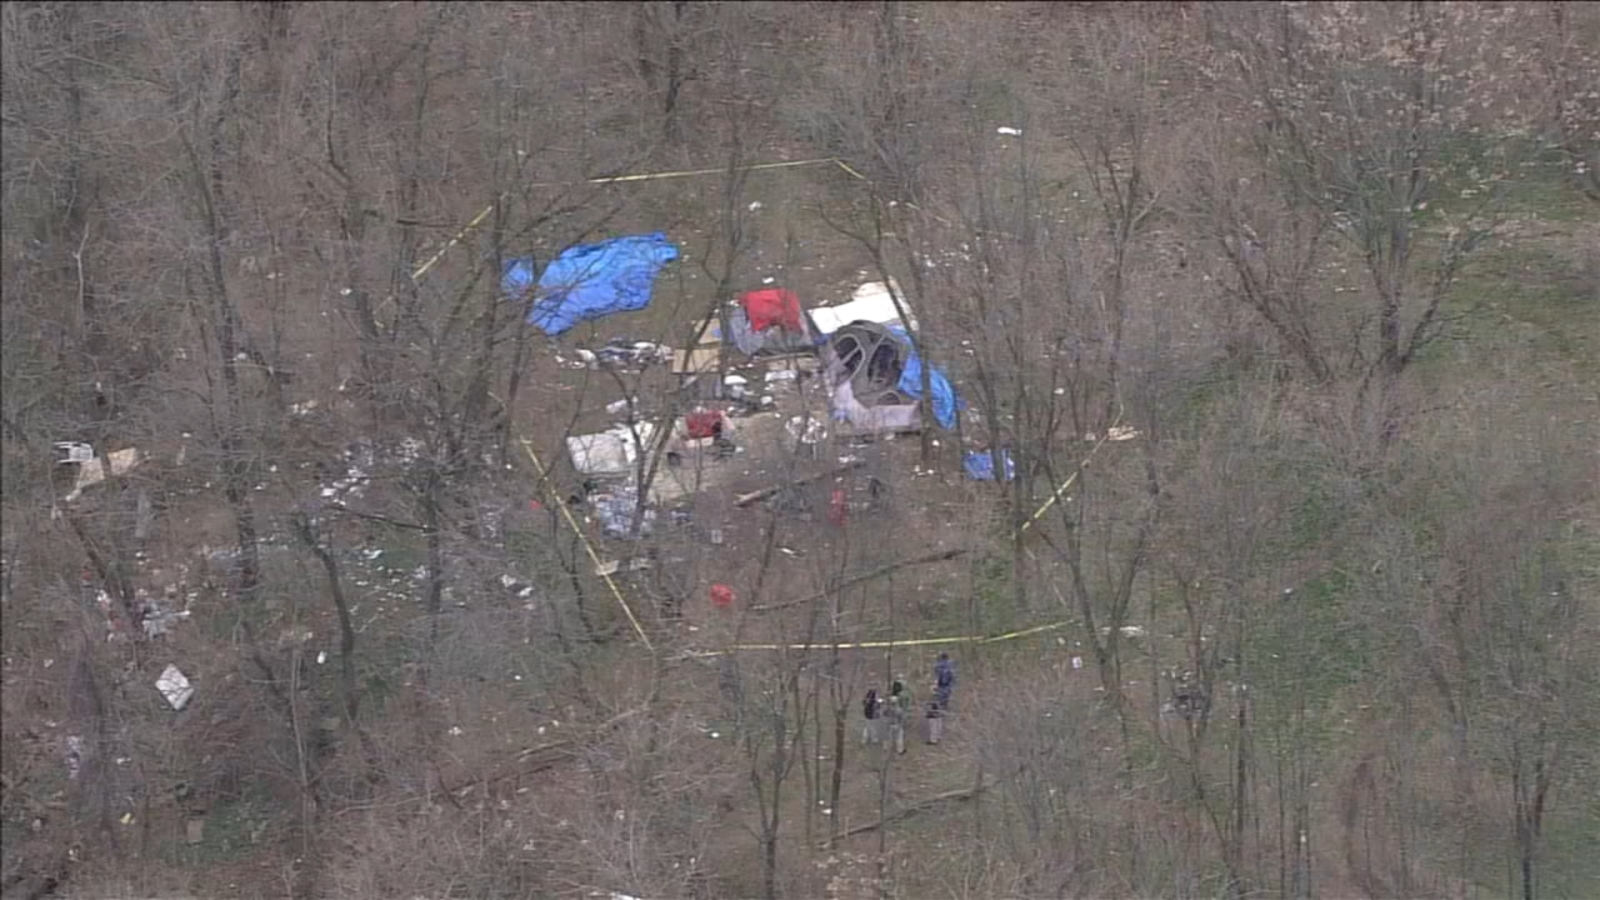 4 People Found Dead In Tent In Delaware S Stanton Woods State